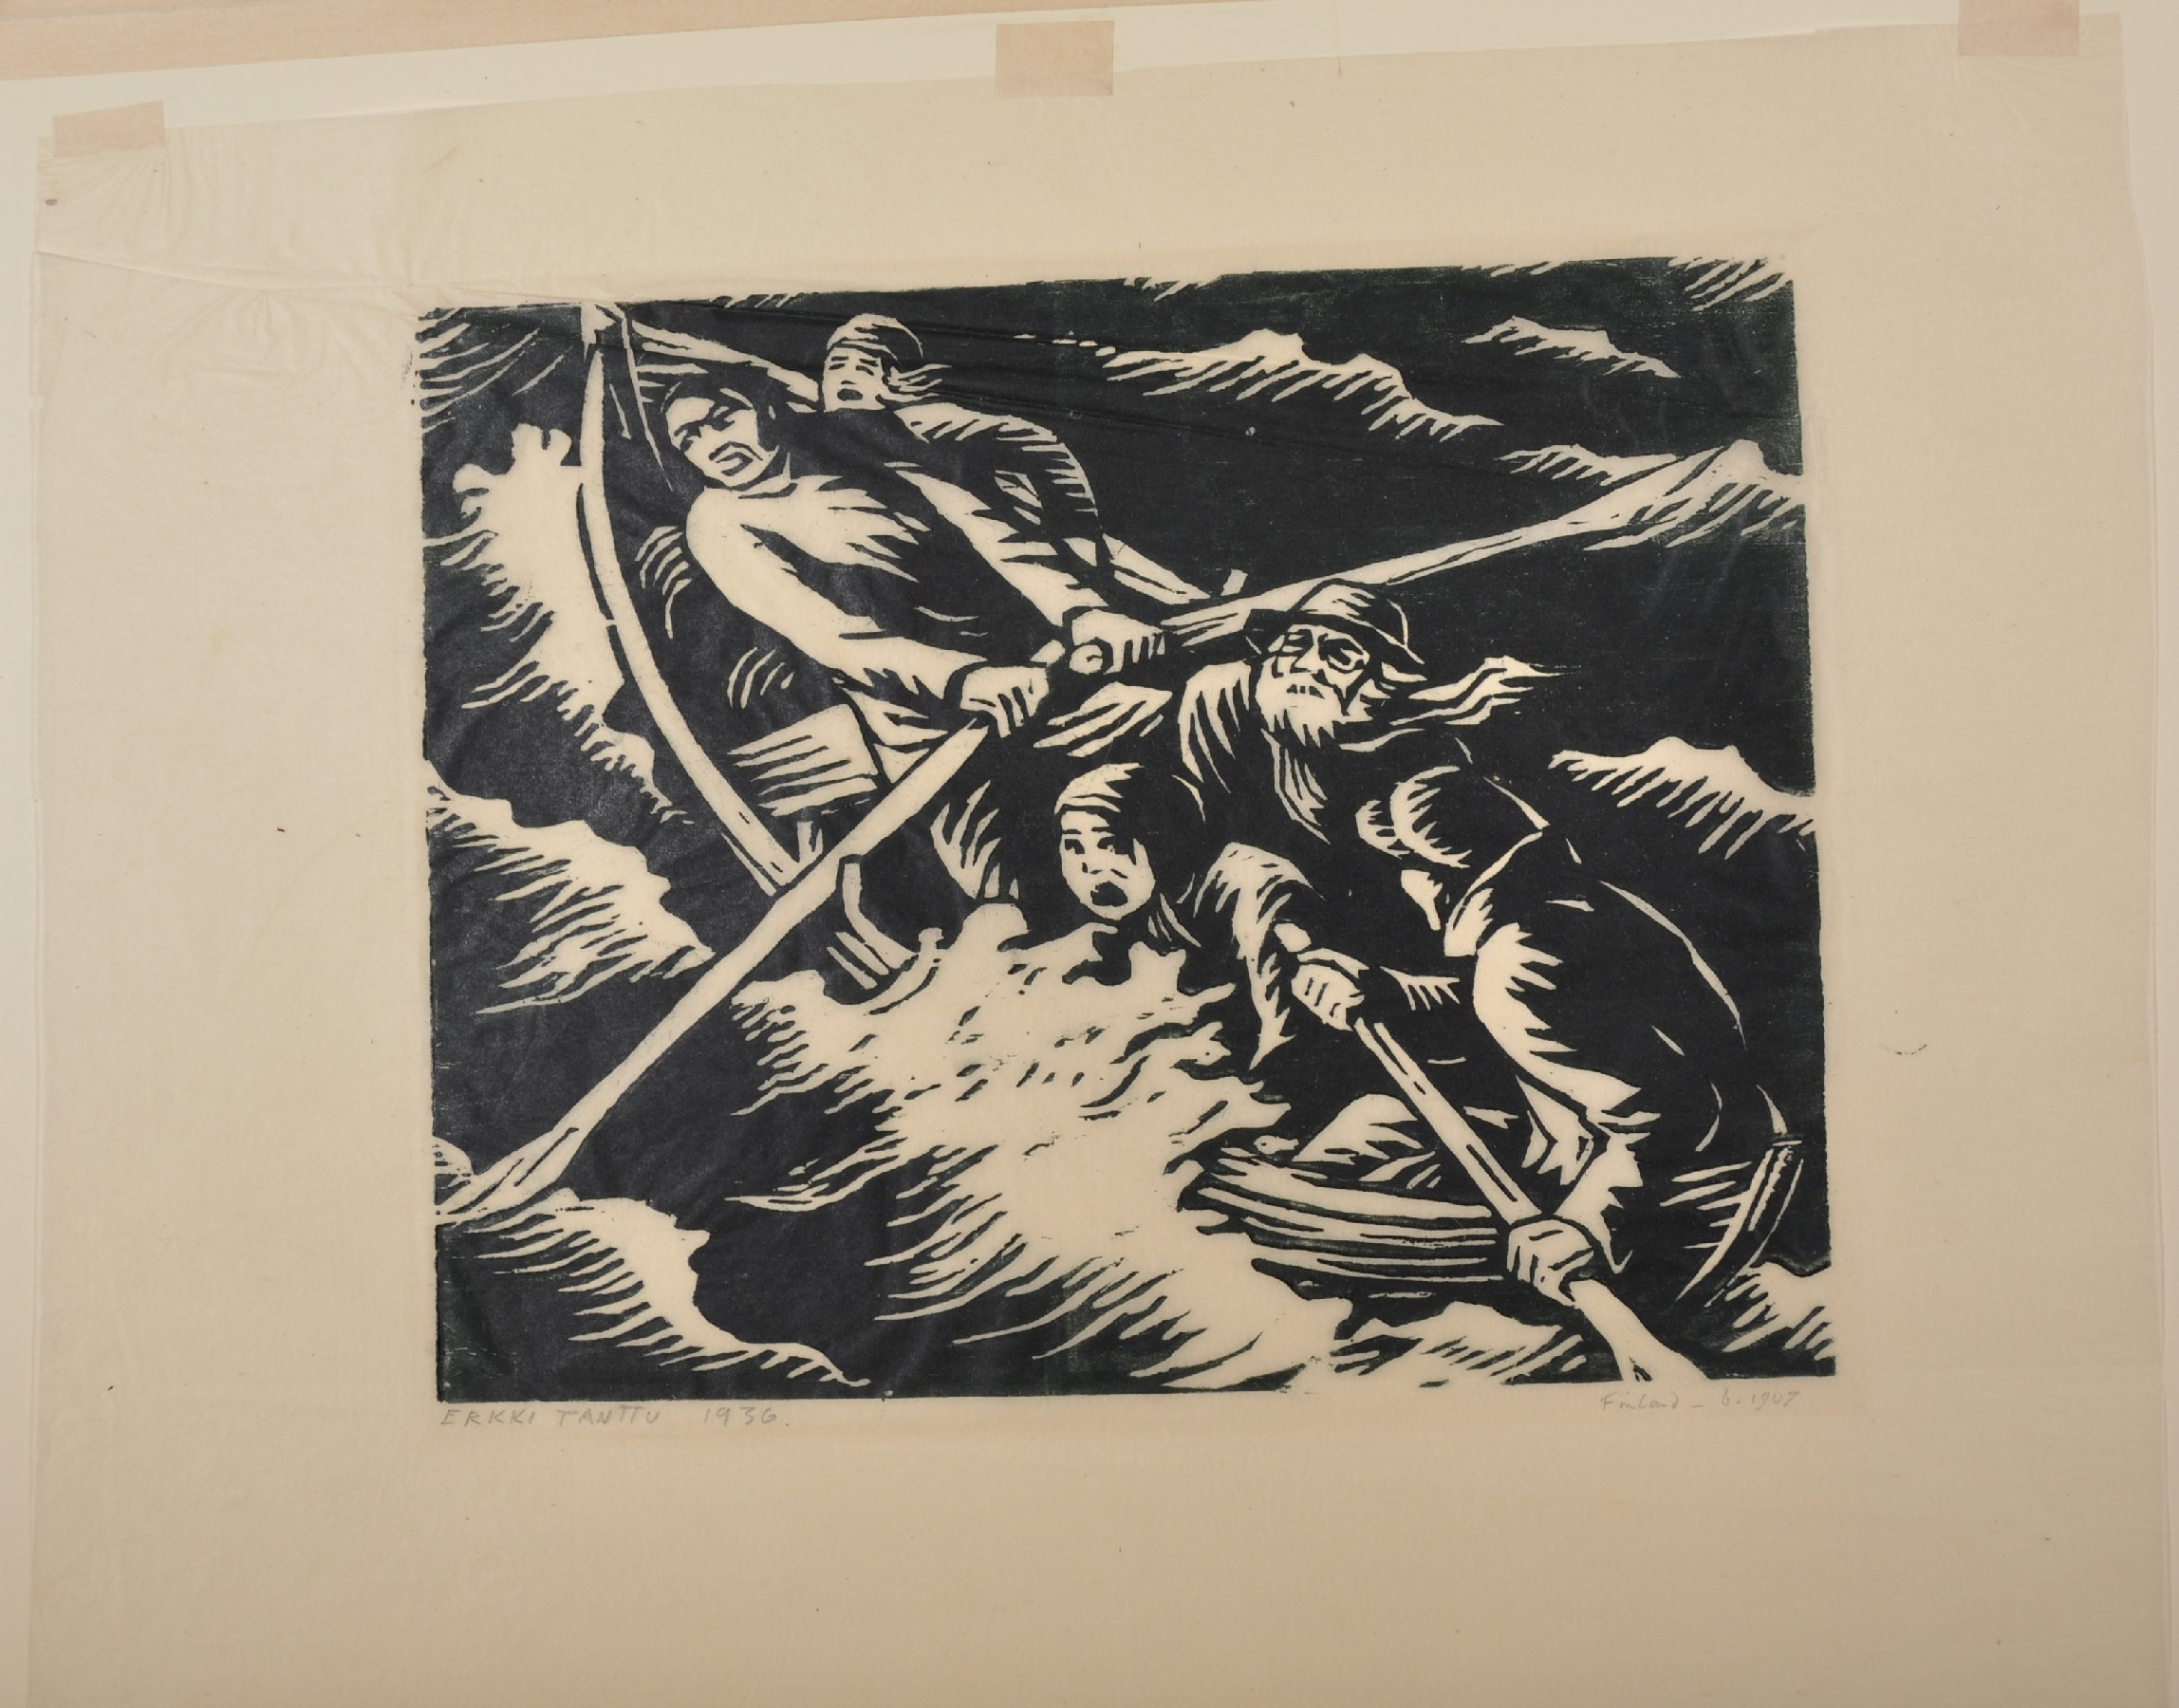 Erkki Tanttu (1907-1985) Finnish. Figures in a Rowing Boat, in Storm Sea, Woodcut, Signed, Inscribed - Image 2 of 3